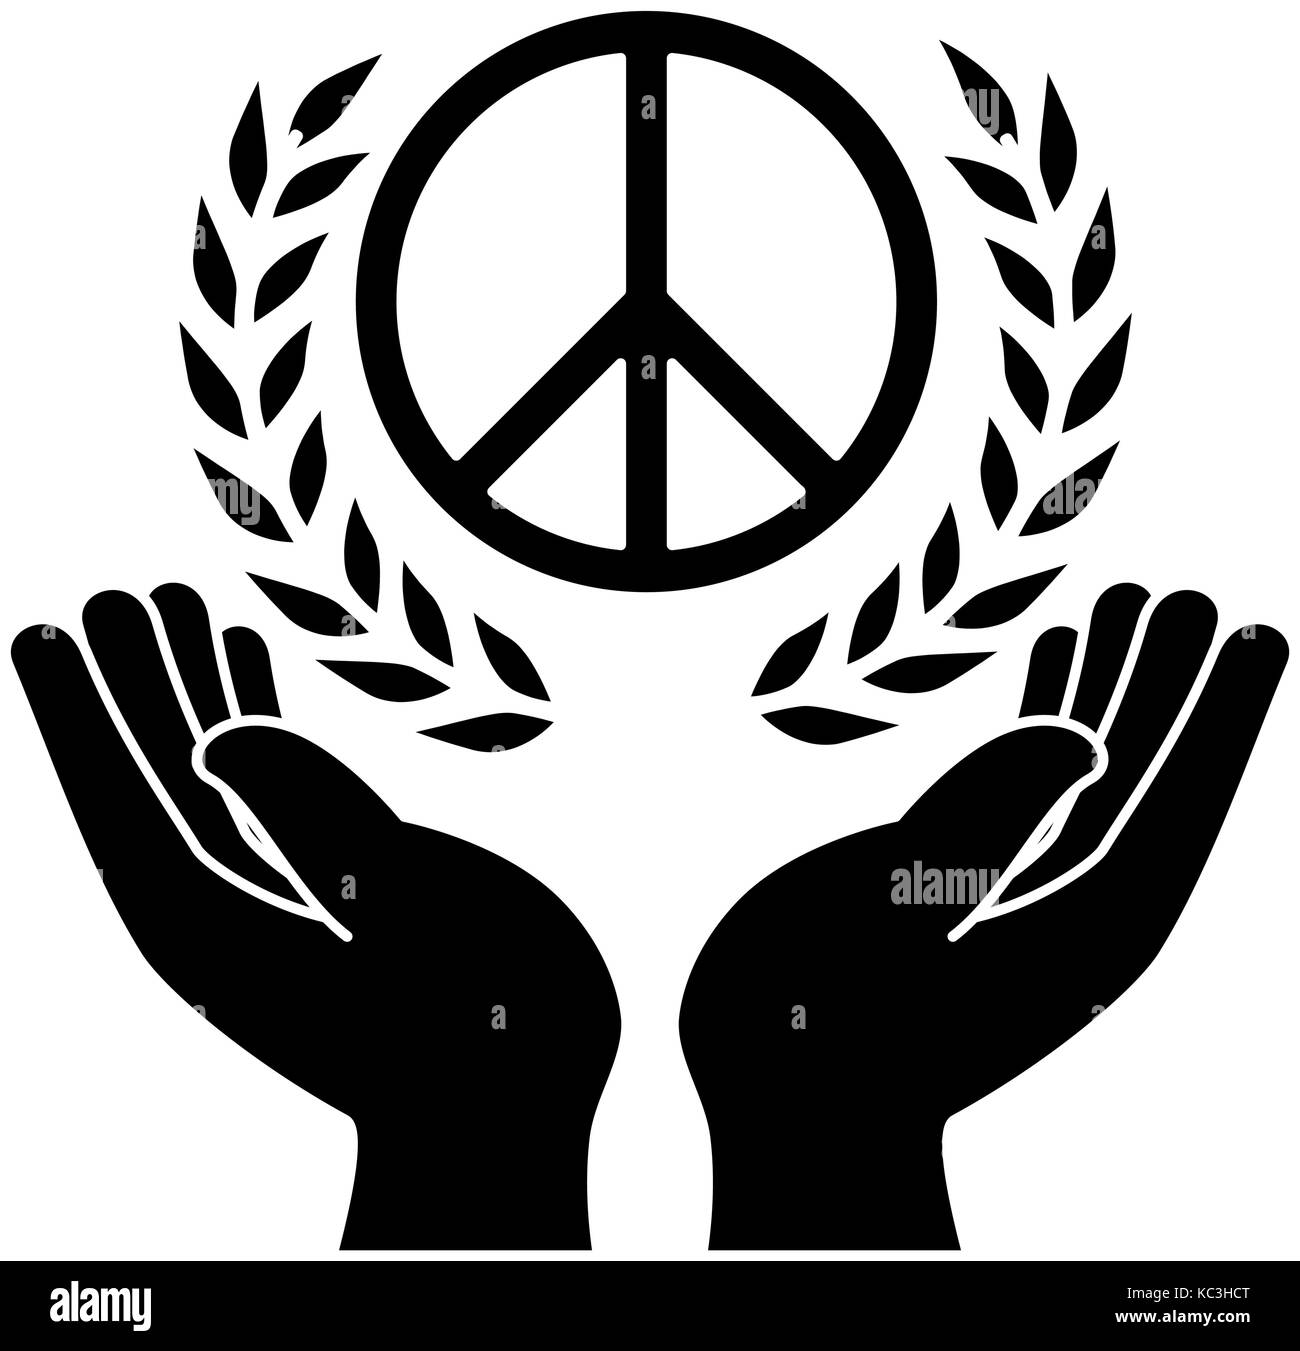 Hands human protection with peace and love symbol vector hands human protection with peace and love symbol vector illustration design biocorpaavc